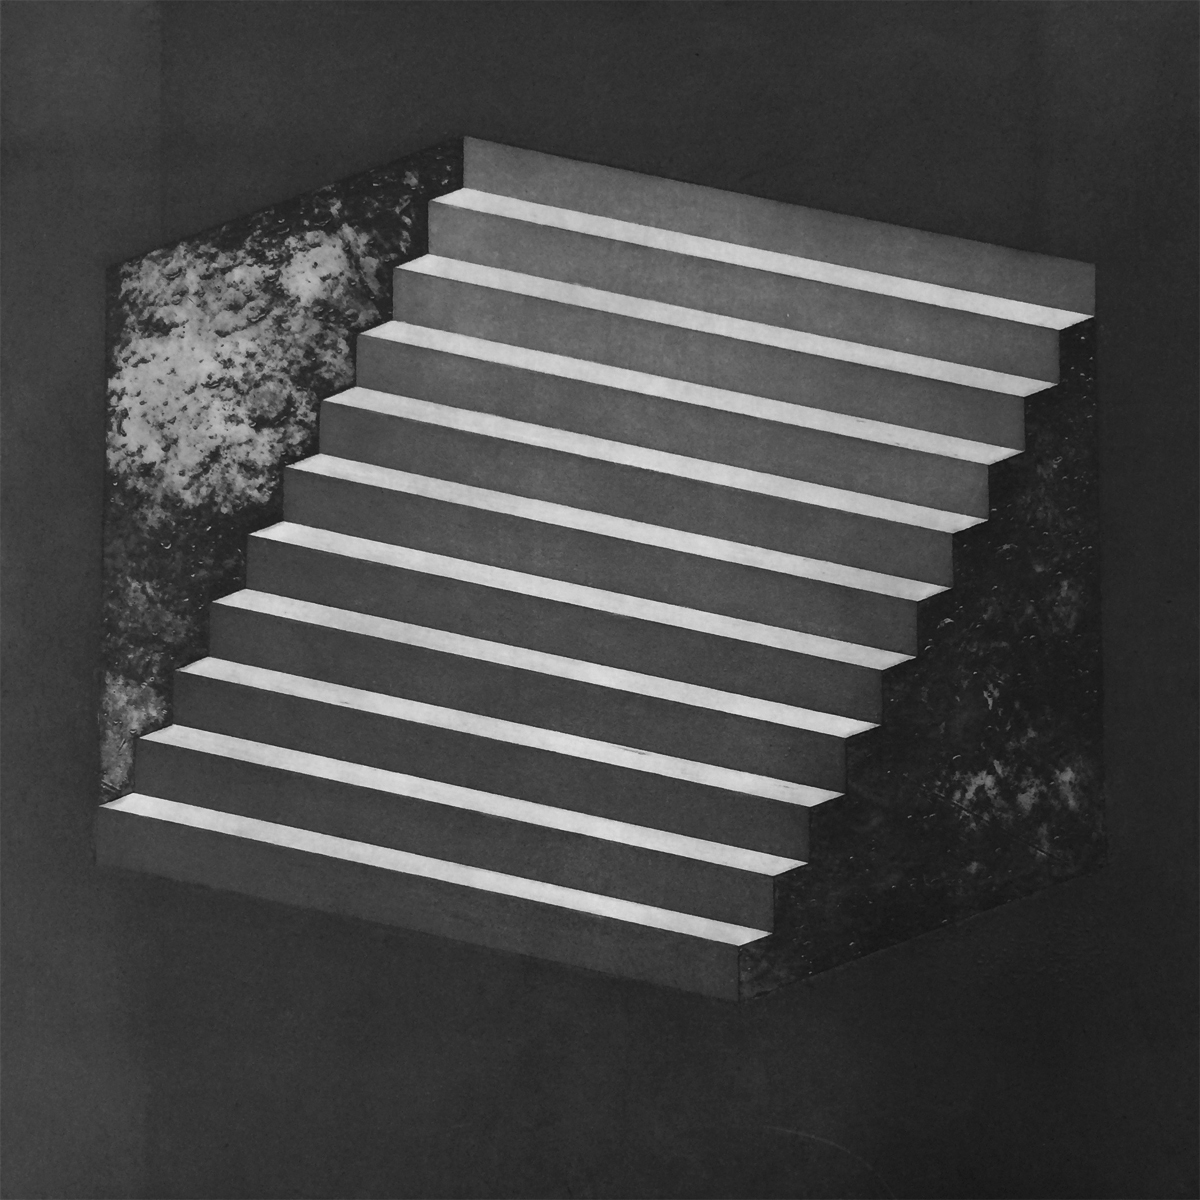 Jeanette Johns  Reversible Stairs  Etching and Aquatint  Edition of 6  18 x 18 inches